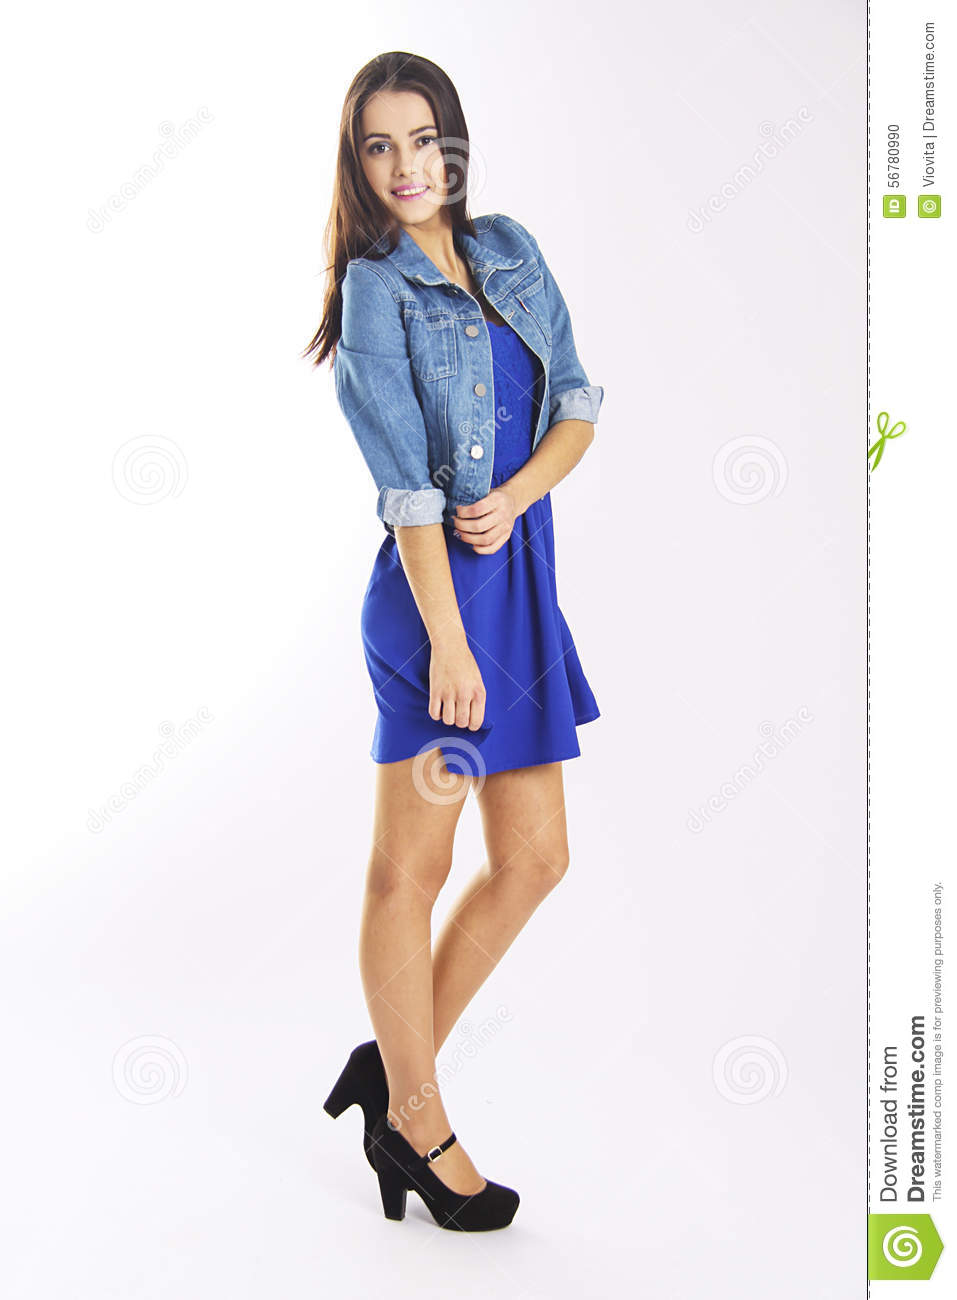 Slim student girl in blue casual dress